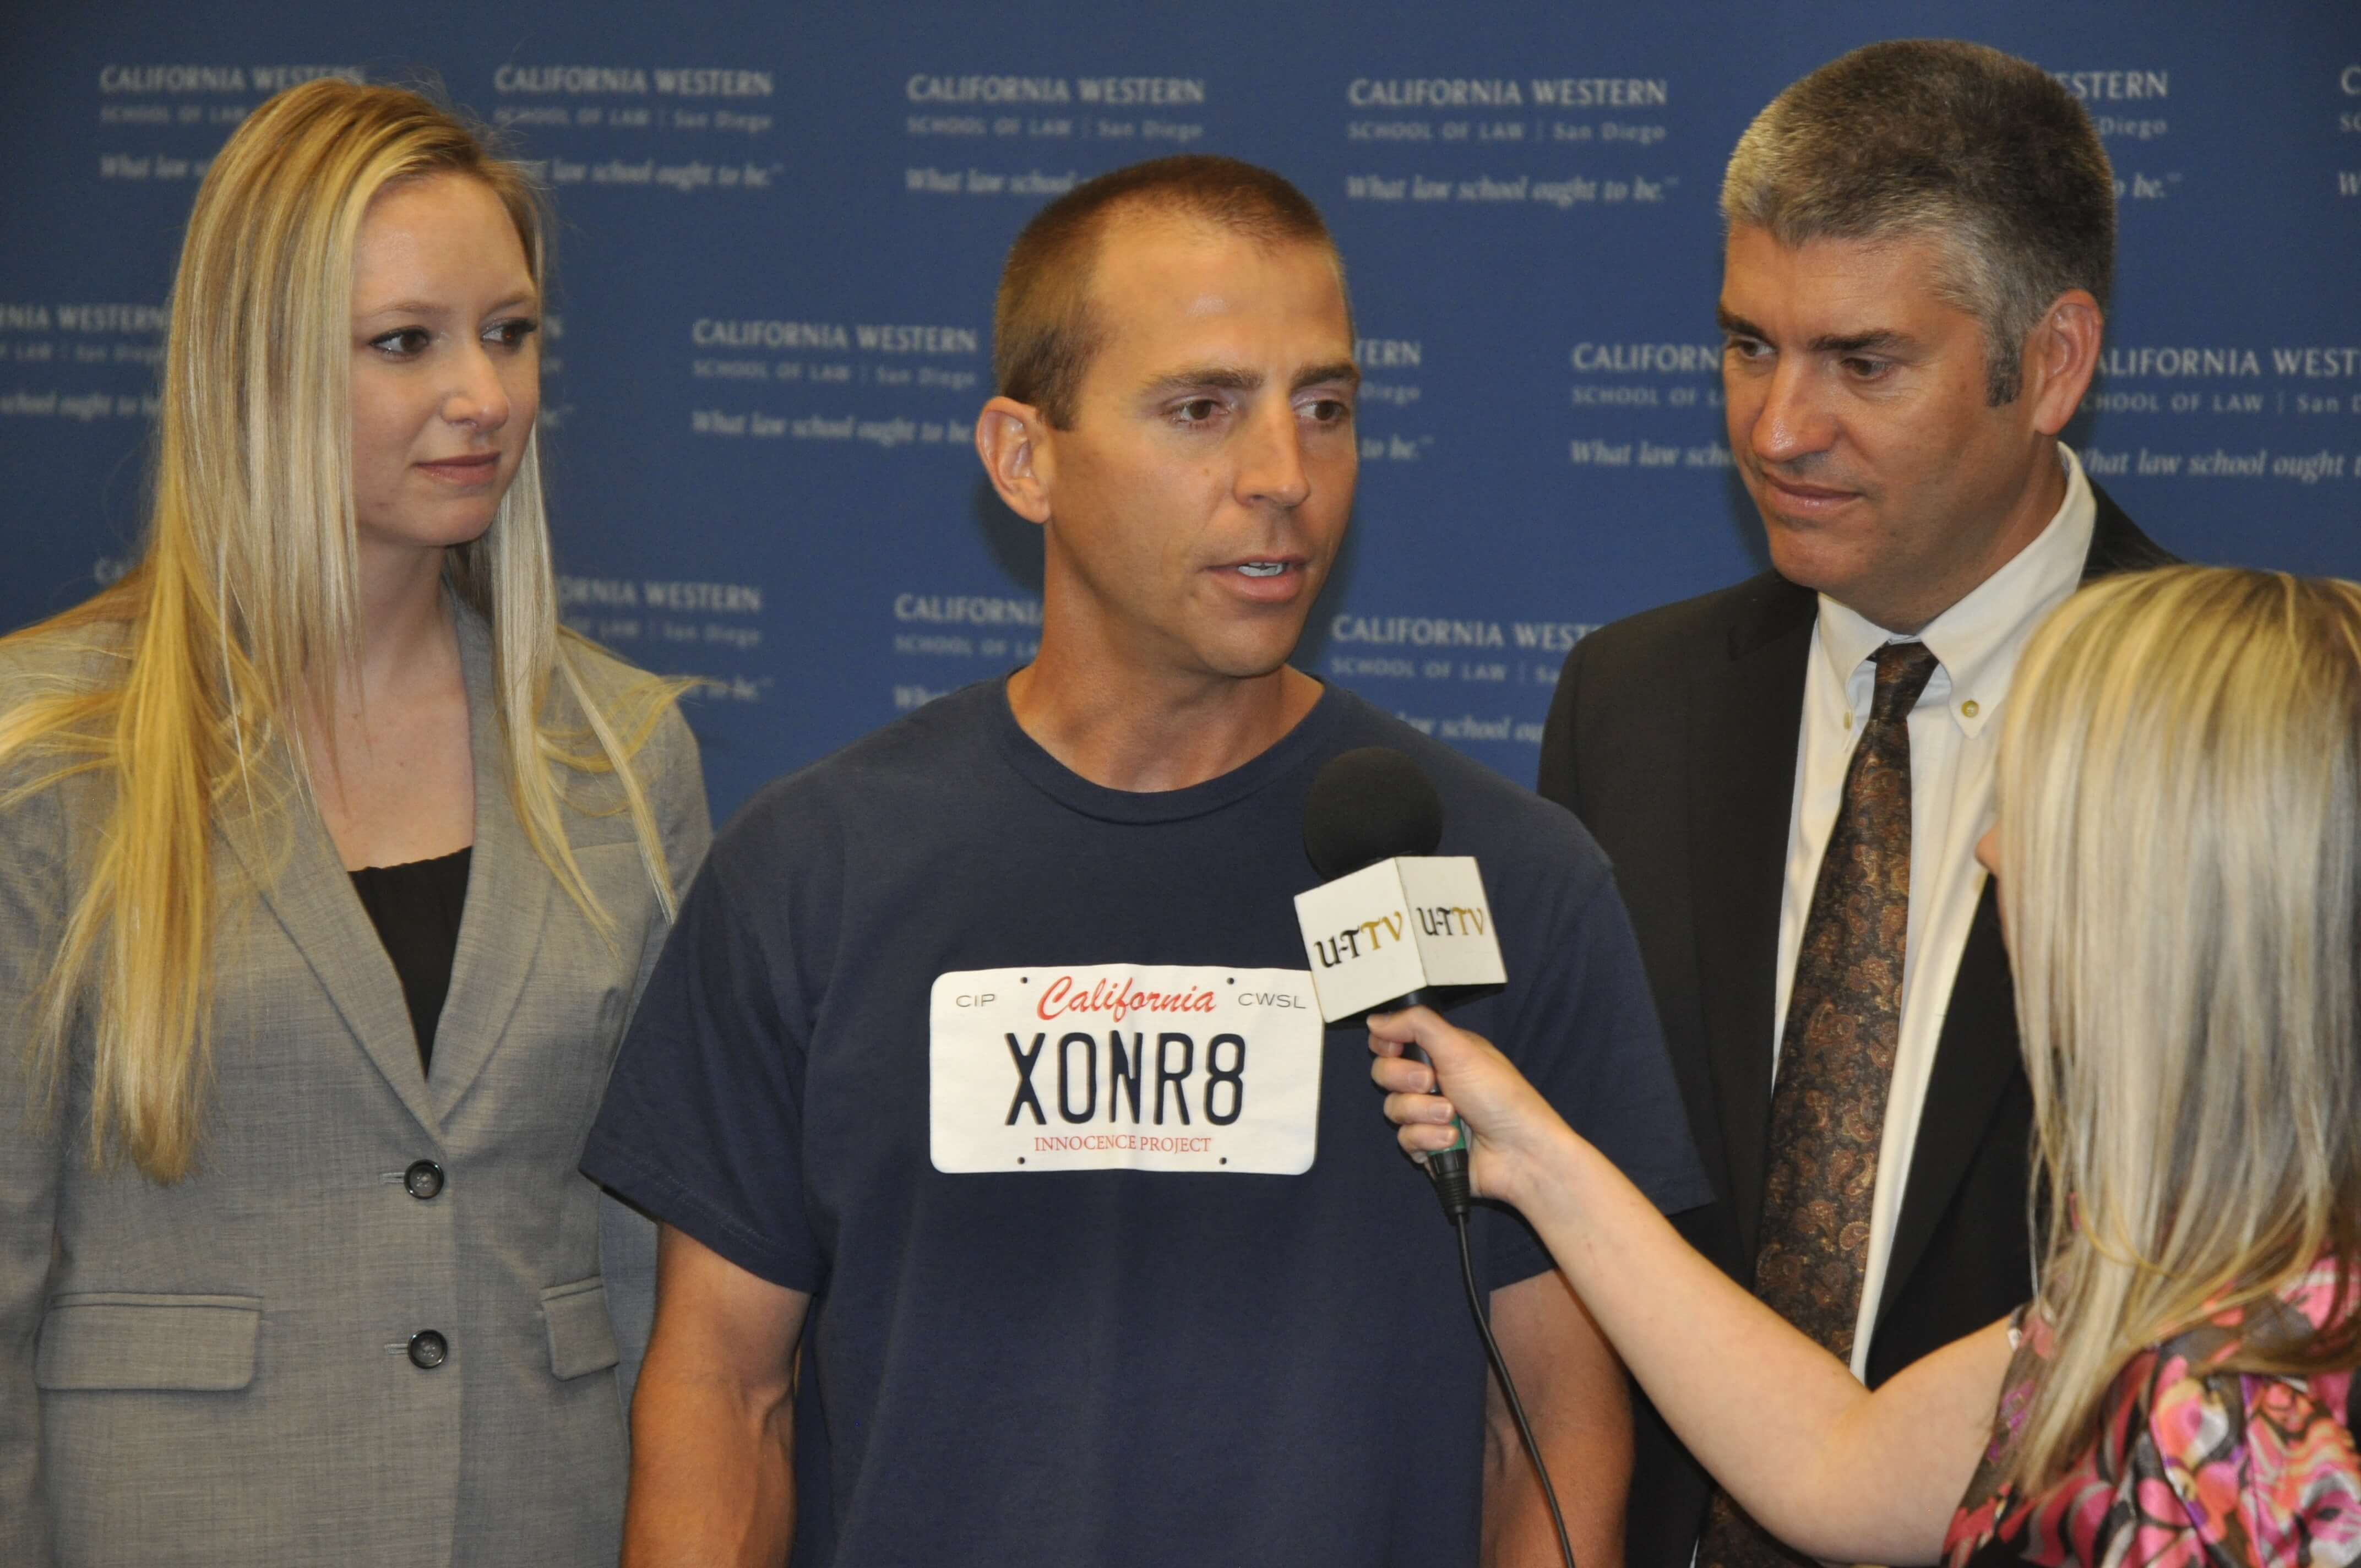 Wrongful Convictions: Investigatory Case Studies from the California Innocence Project